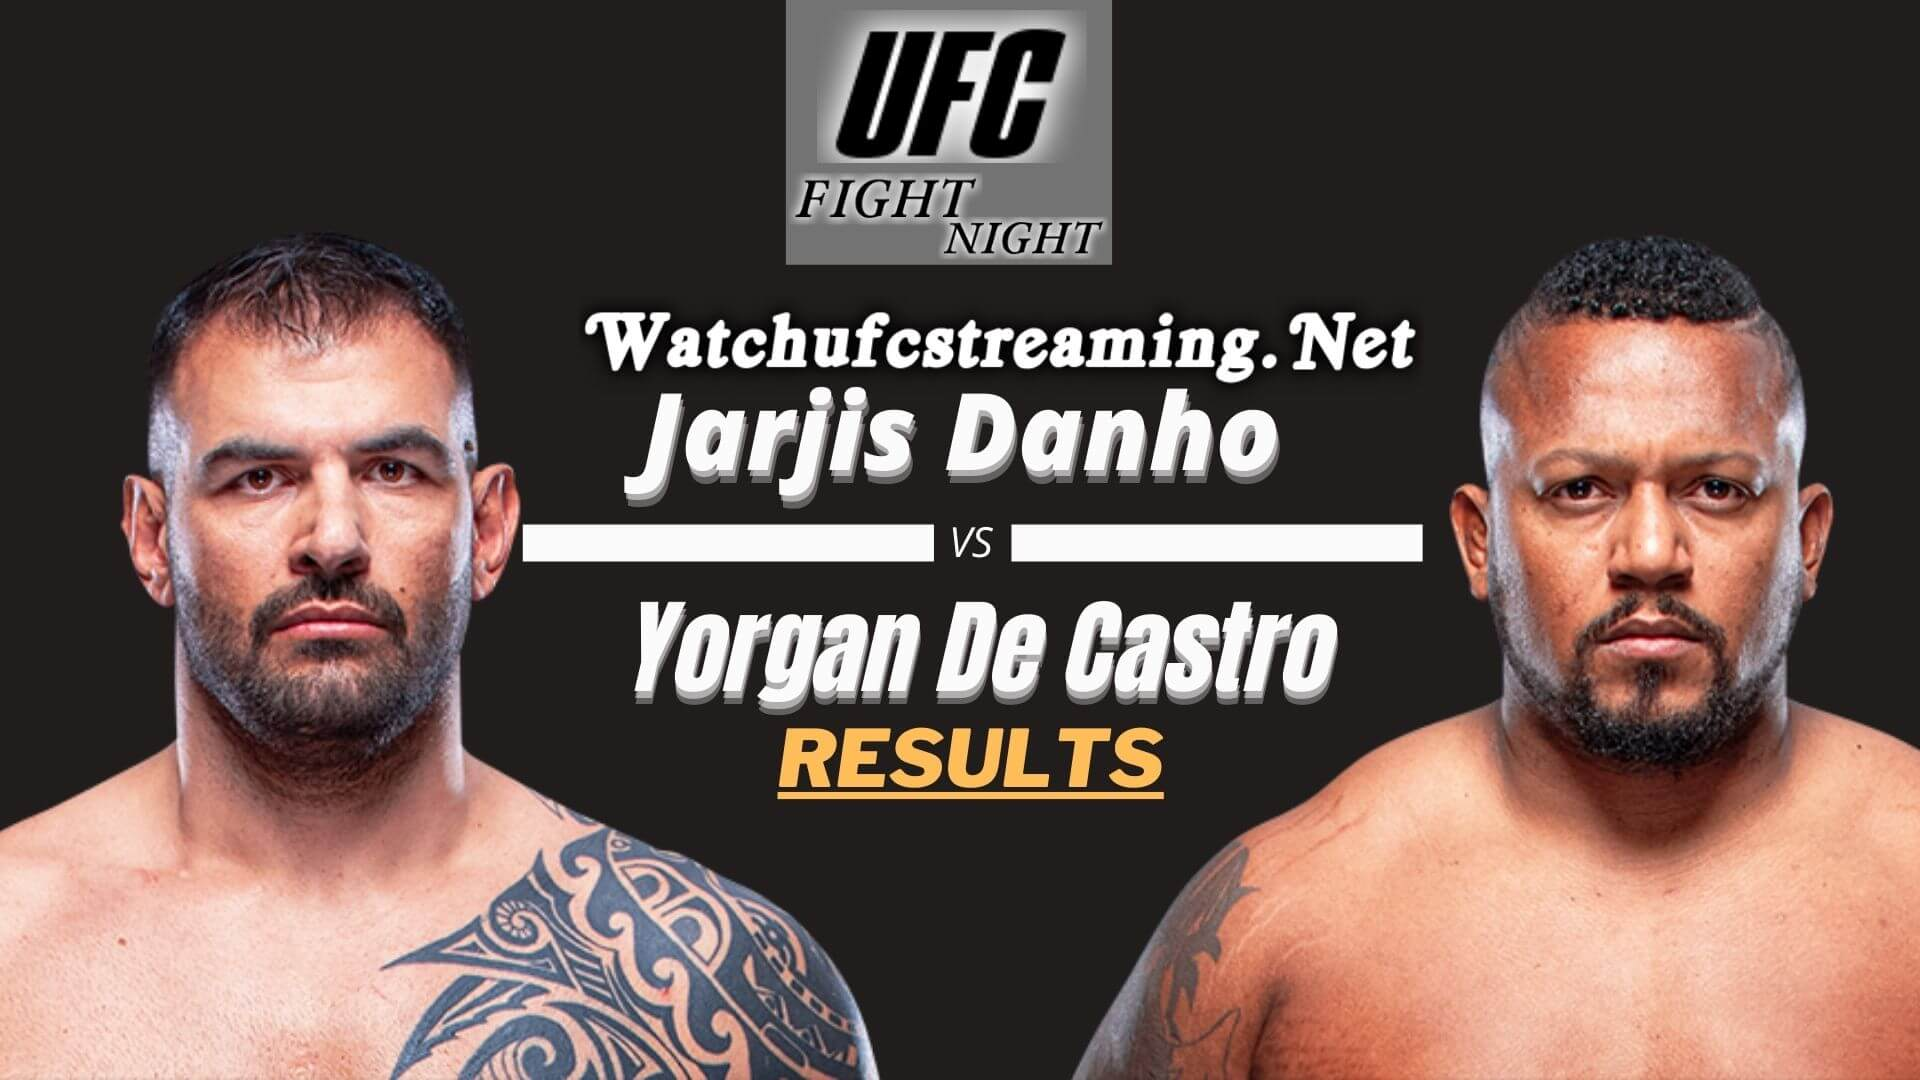 Danho Vs Castro Result 2021 | Fight Night 188